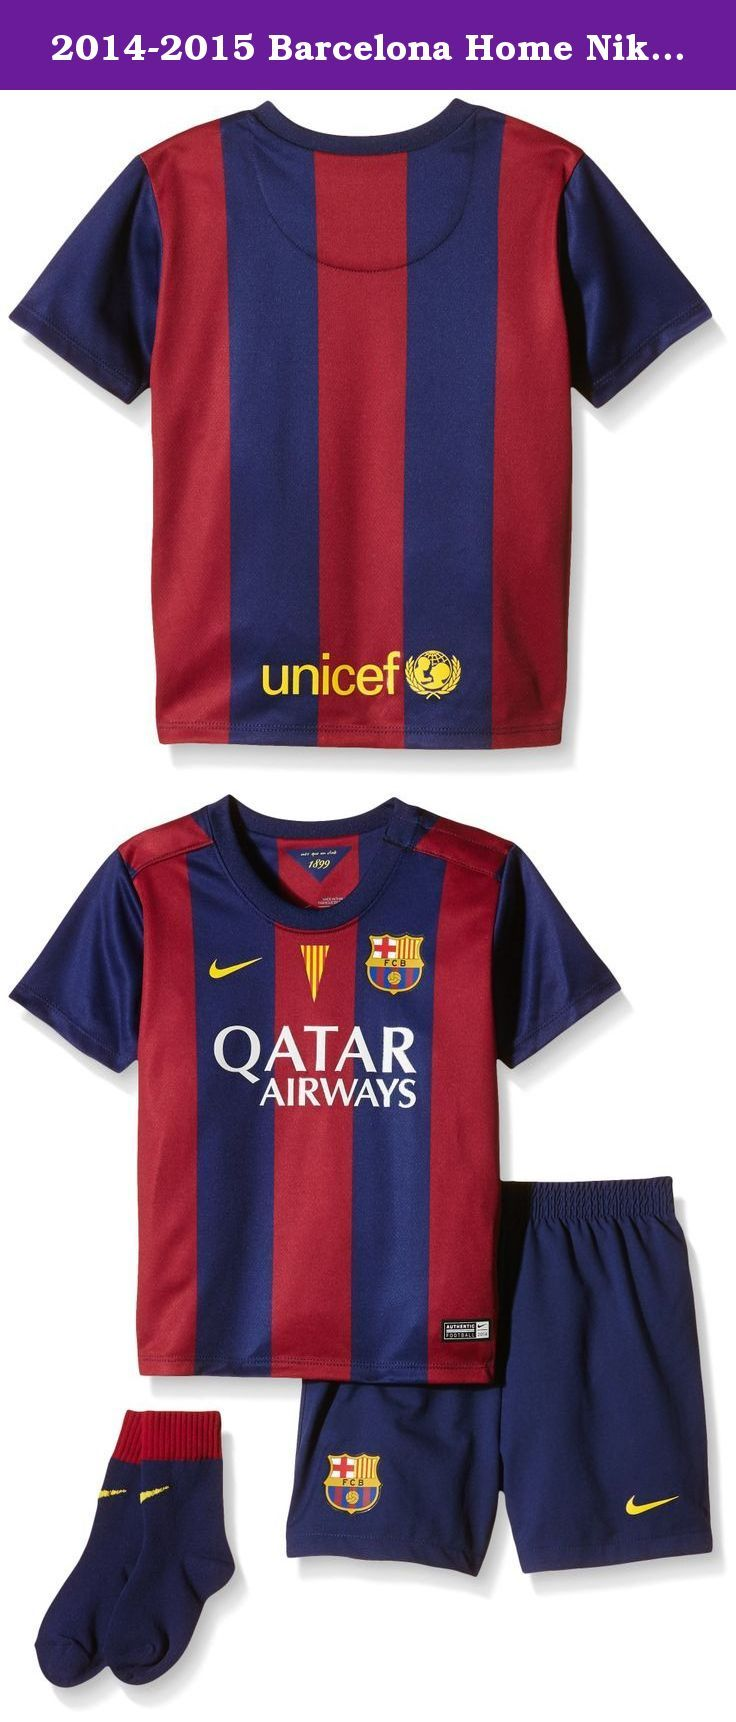 2014-2015 Barcelona Home Nike Baby Kit. Brand new, official Barcelona Home Baby Kit for the 2014 2015 La Liga season. This is the new FC Barcelona football kit which is available to buy online in a full range of kids sizes for ages 0-3 years. This soccer jersey is manufactured by Nike.Add the name and number of your favourite player including Neymar and Lionel Messi for just 12.95, or choose your own custom shirt printing.The Nike FC Barcelona Home Kit 2014 2015 offers a comfortable fit...